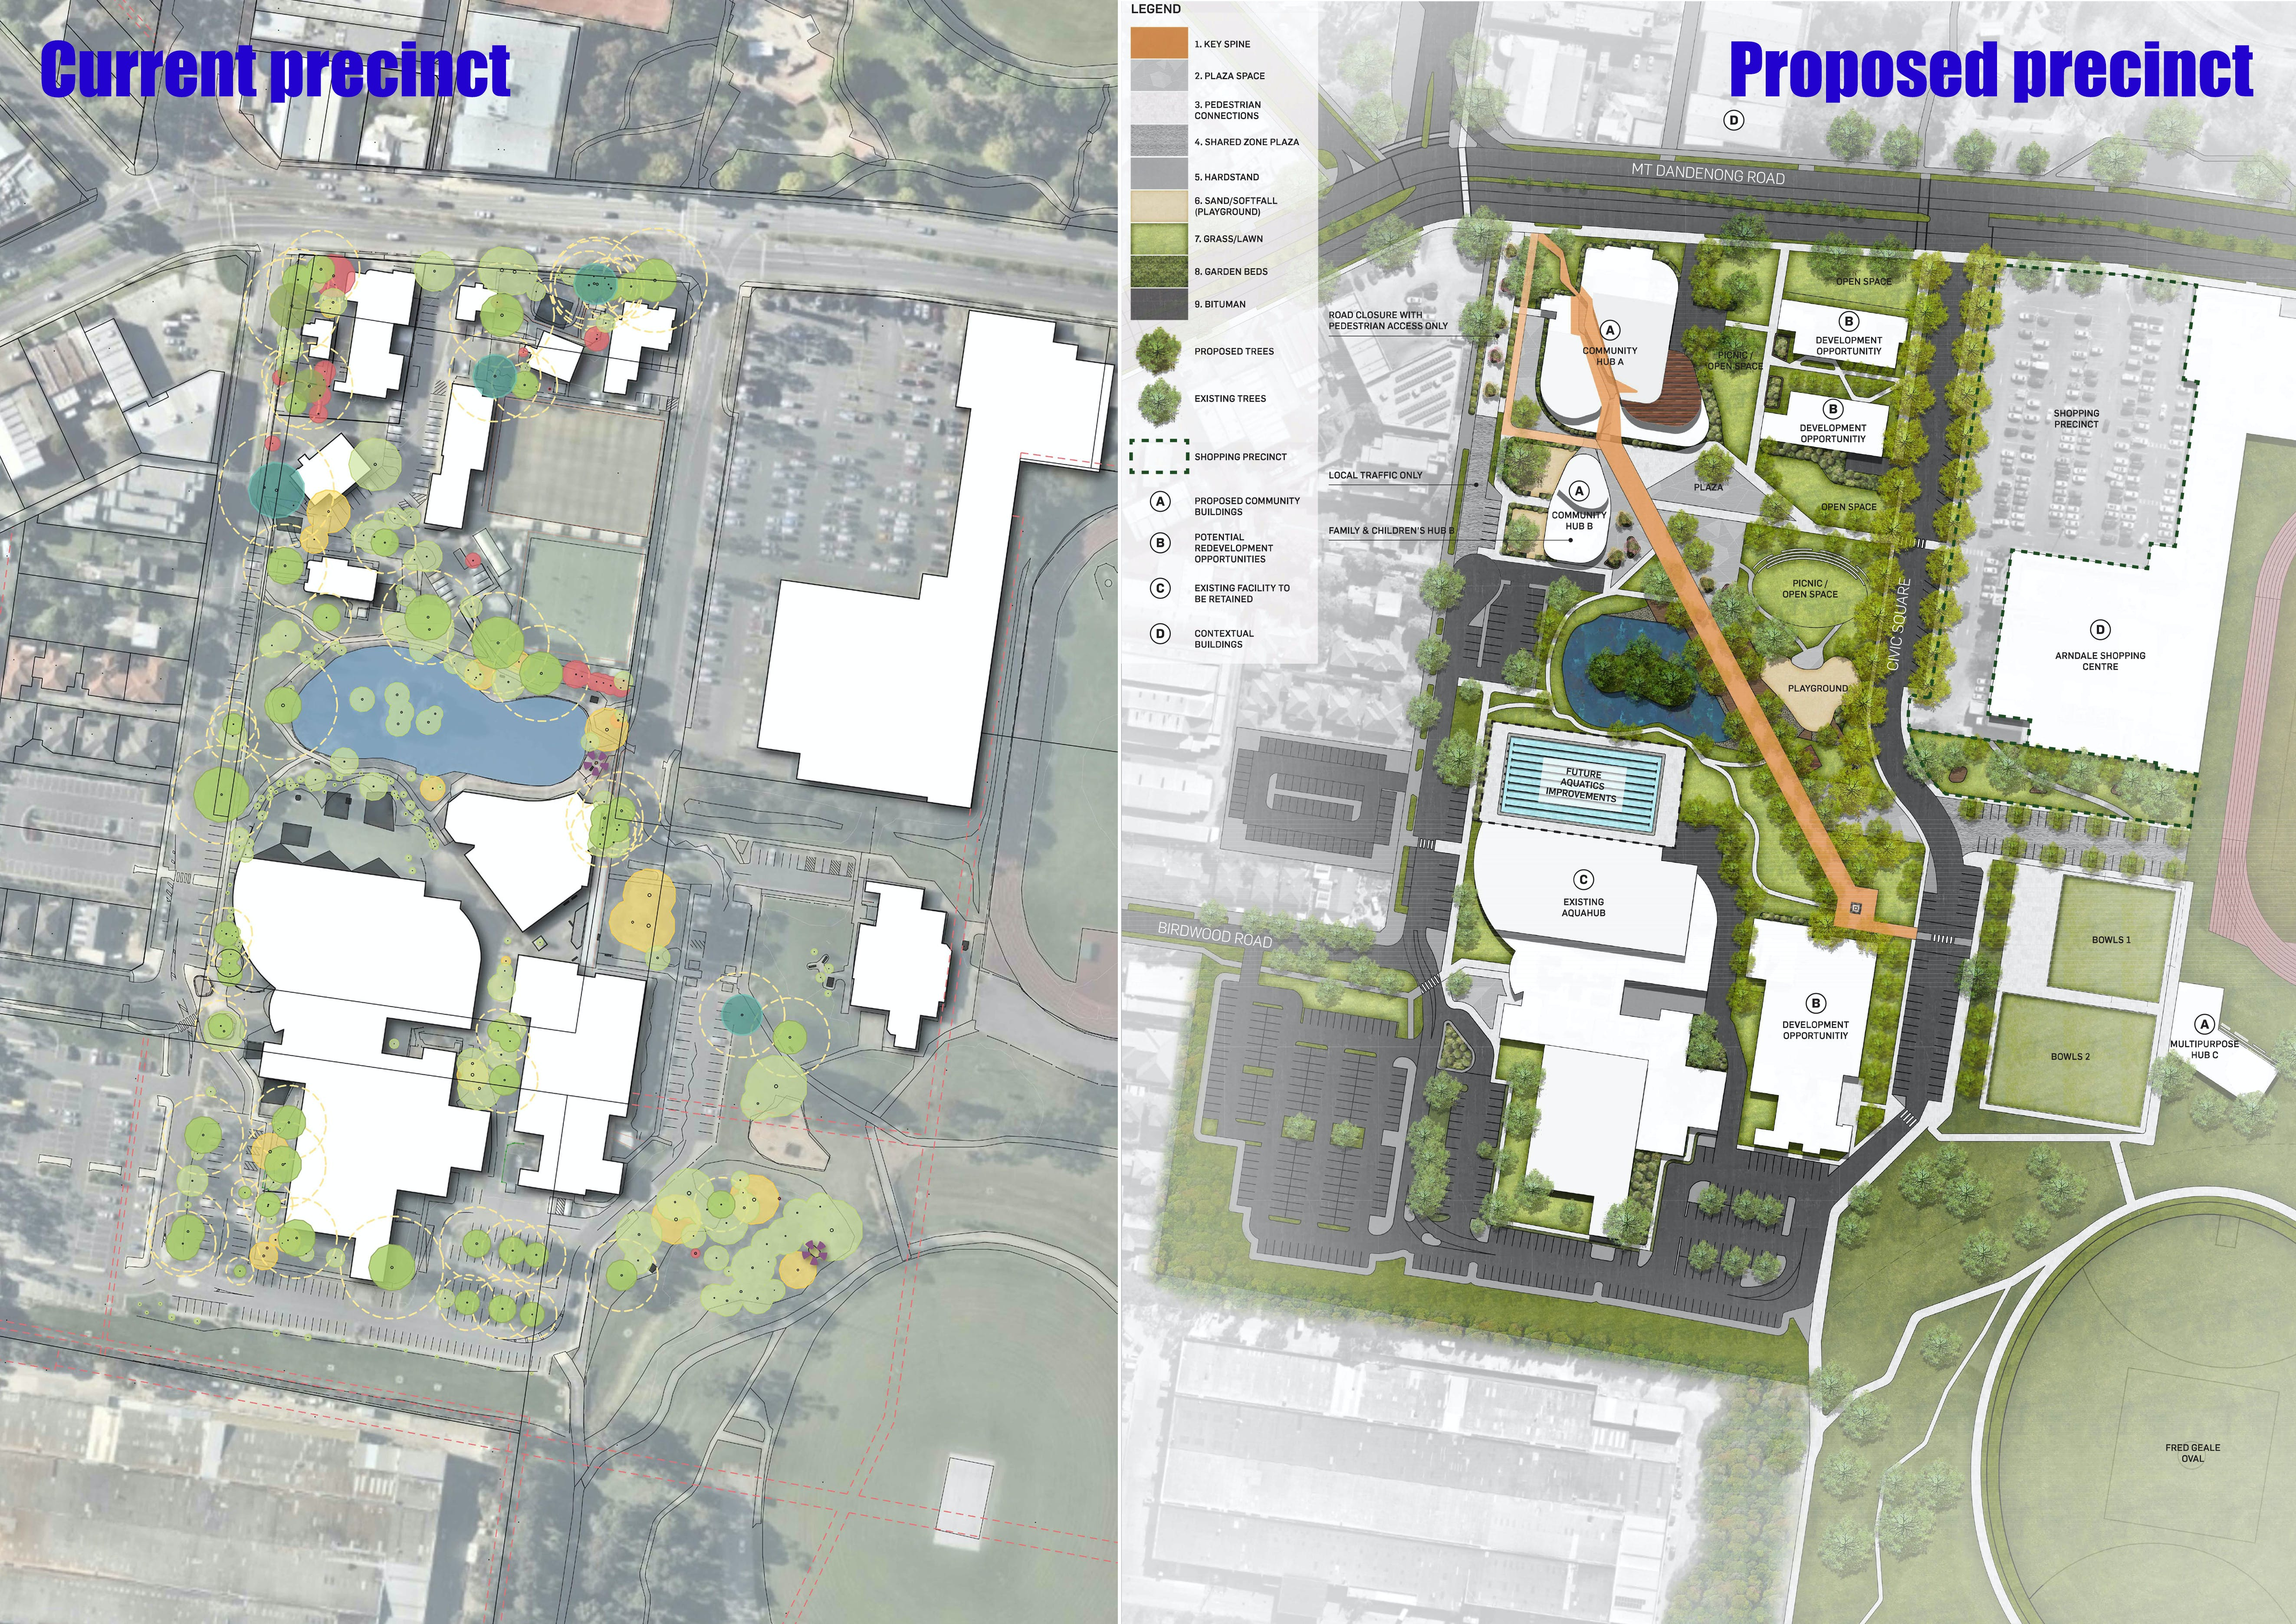 Before And After Images of the precinct